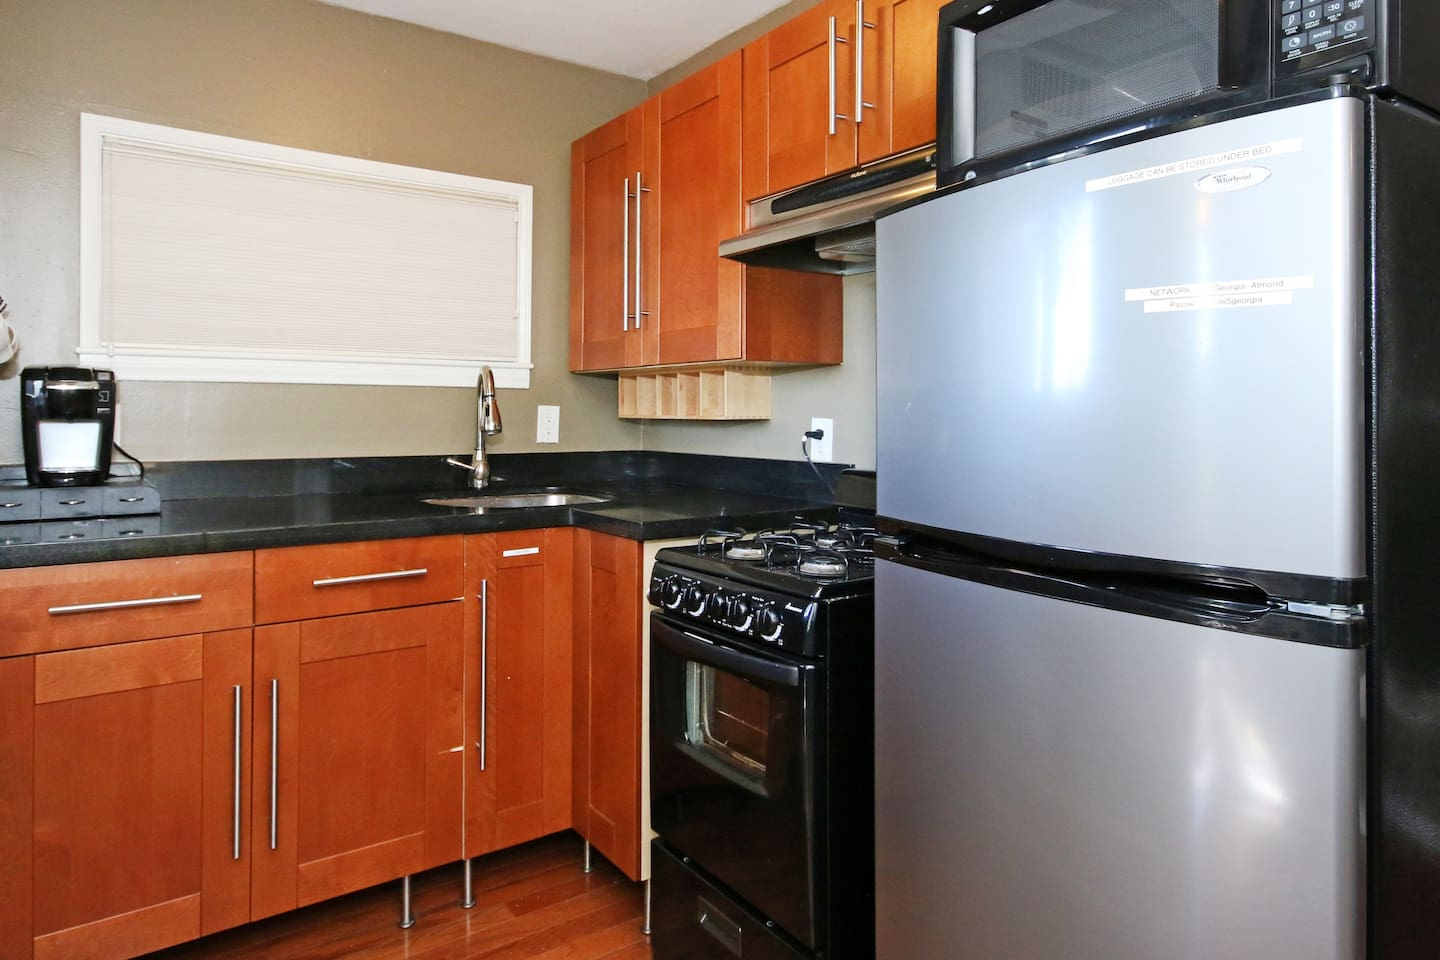 Updated kitchen. Stainless steel Refrigerator.  Gas stove with Oven. Granite countertop.